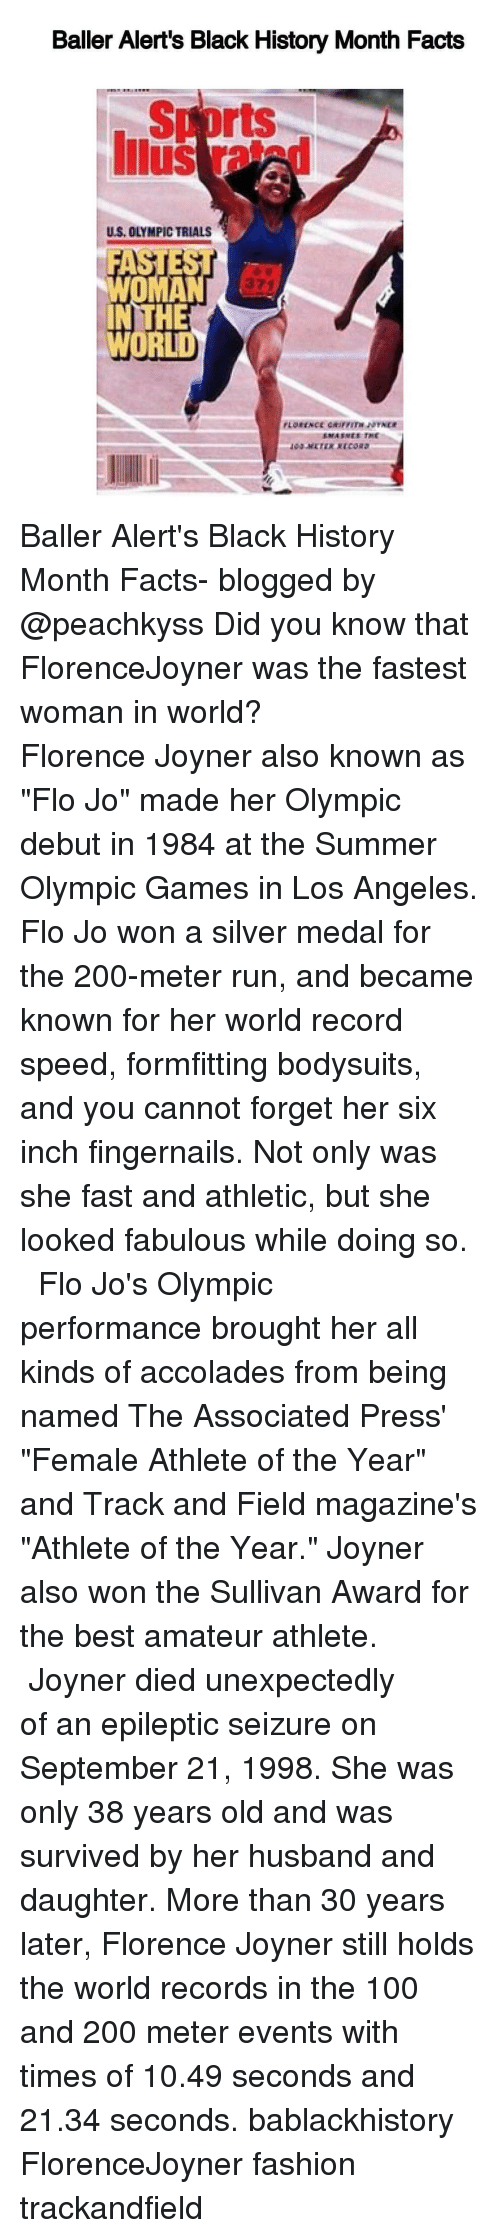 """Unexpectable: Baller Alert's Black History Month Facts  rts  US, OLYMPICTRIALS  HE  WORLD Baller Alert's Black History Month Facts- blogged by @peachkyss Did you know that FlorenceJoyner was the fastest woman in world? ⠀⠀⠀⠀⠀⠀⠀⠀⠀ ⠀⠀⠀⠀⠀⠀⠀⠀⠀ Florence Joyner also known as """"Flo Jo"""" made her Olympic debut in 1984 at the Summer Olympic Games in Los Angeles. Flo Jo won a silver medal for the 200-meter run, and became known for her world record speed, formfitting bodysuits, and you cannot forget her six inch fingernails. Not only was she fast and athletic, but she looked fabulous while doing so. ⠀⠀⠀⠀⠀⠀⠀⠀⠀ ⠀⠀⠀⠀⠀⠀⠀⠀⠀ Flo Jo's Olympic performance brought her all kinds of accolades from being named The Associated Press' """"Female Athlete of the Year"""" and Track and Field magazine's """"Athlete of the Year."""" Joyner also won the Sullivan Award for the best amateur athlete. ⠀⠀⠀⠀⠀⠀⠀⠀⠀ ⠀⠀⠀⠀⠀⠀⠀⠀⠀ Joyner died unexpectedly of an epileptic seizure on September 21, 1998. She was only 38 years old and was survived by her husband and daughter. More than 30 years later, Florence Joyner still holds the world records in the 100 and 200 meter events with times of 10.49 seconds and 21.34 seconds. bablackhistory FlorenceJoyner fashion trackandfield"""